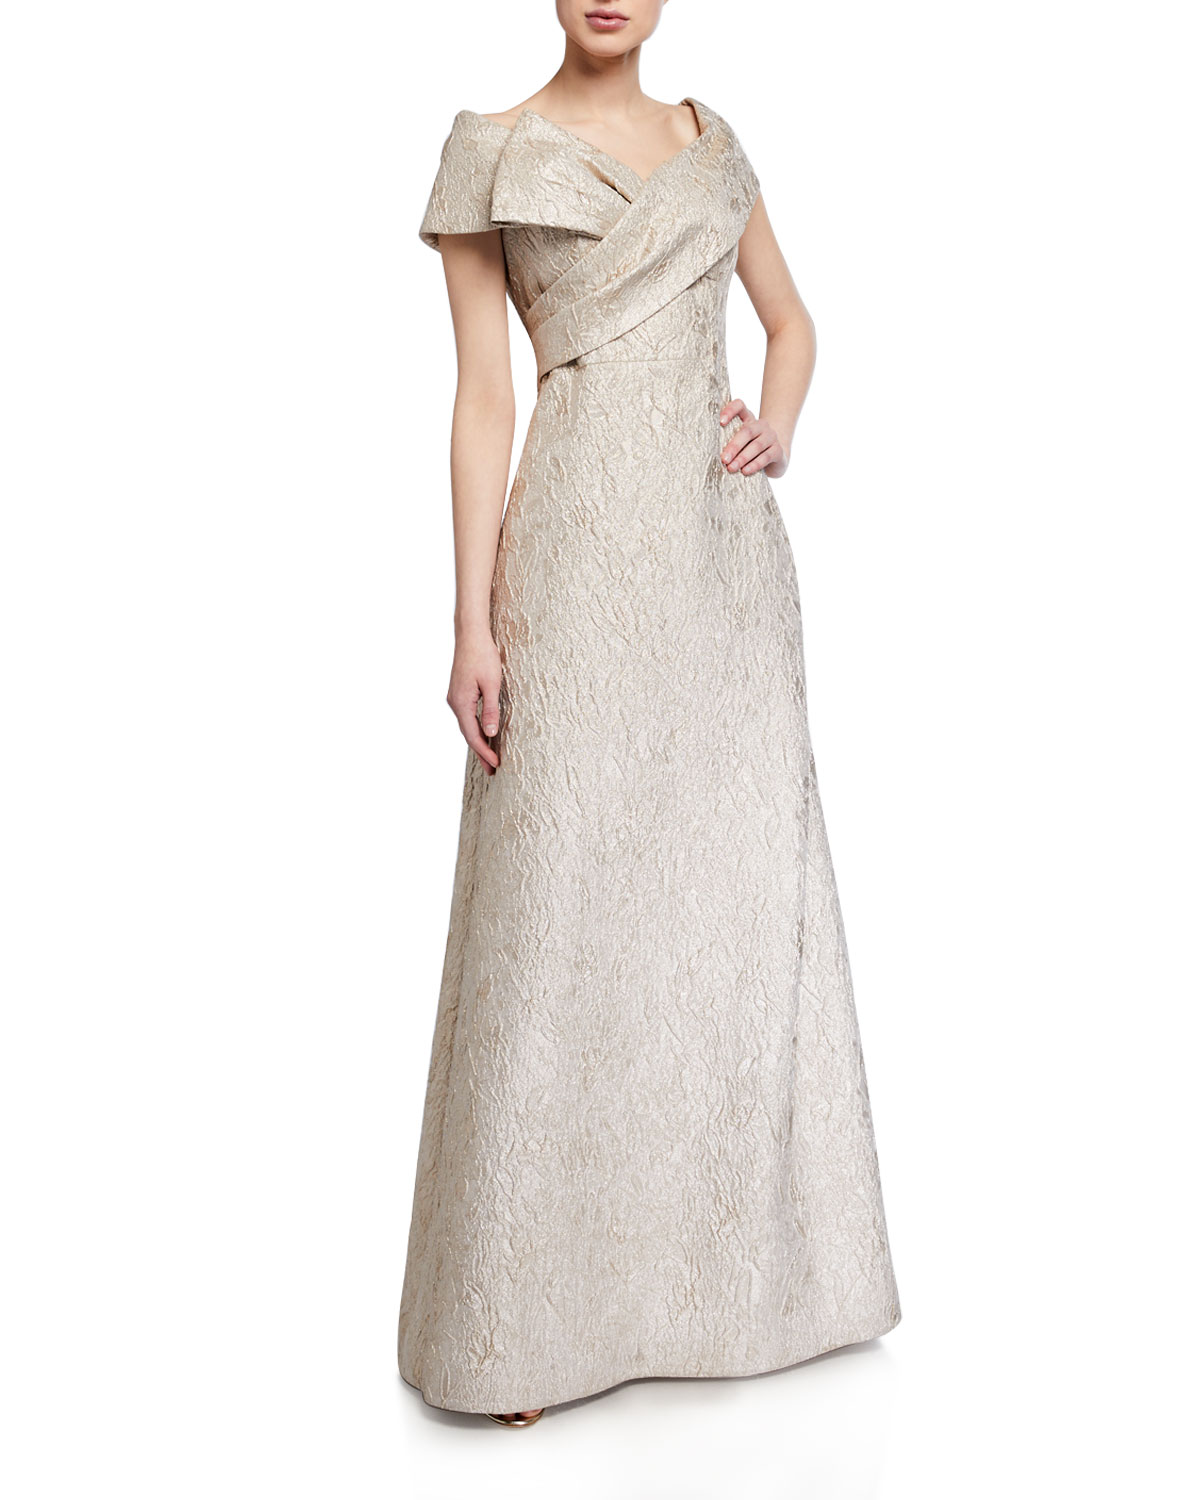 Rickie Freeman for Teri Jon Off-the-Shoulder Brocade A-Line Gown